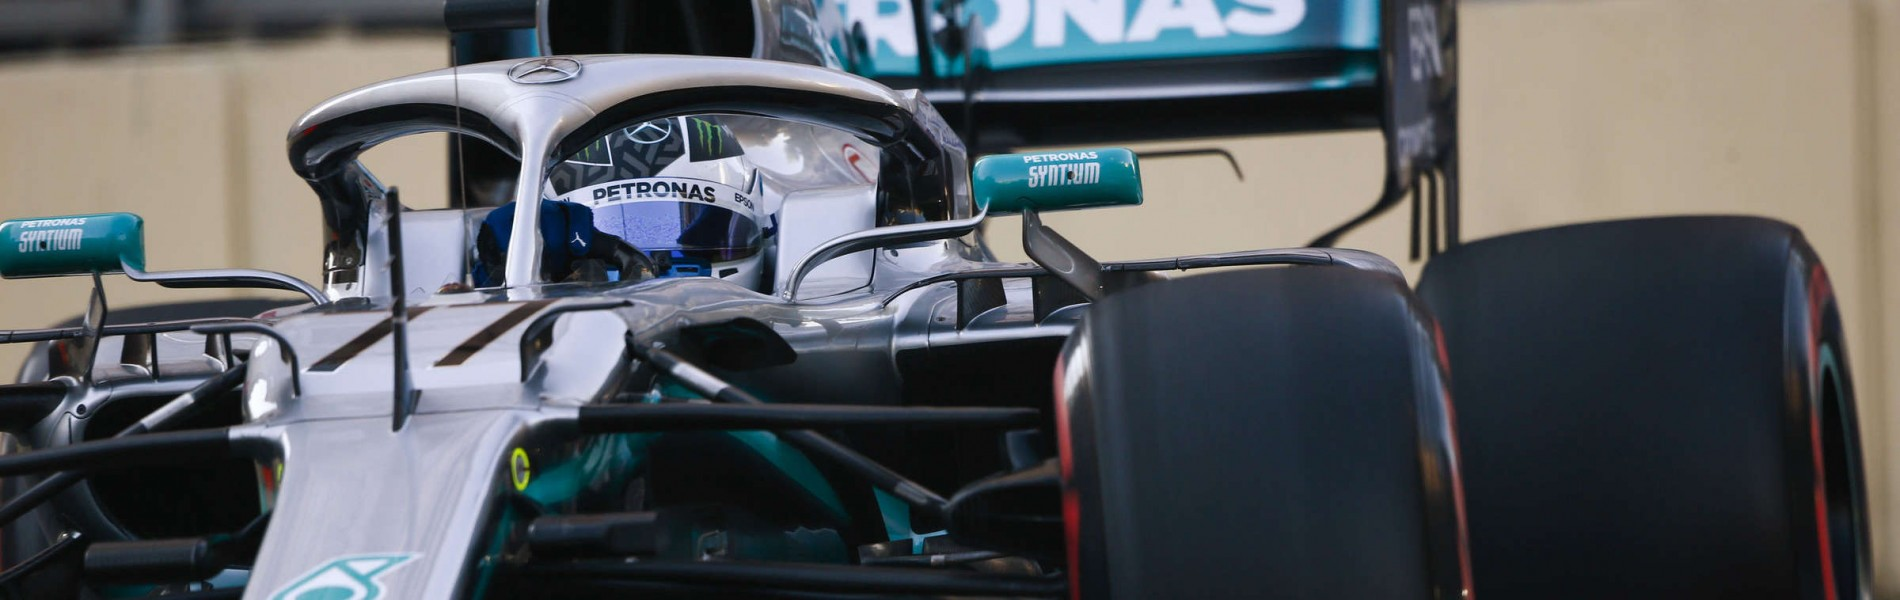 Images from the 2019 Azerbaijan F1 Grand Prix